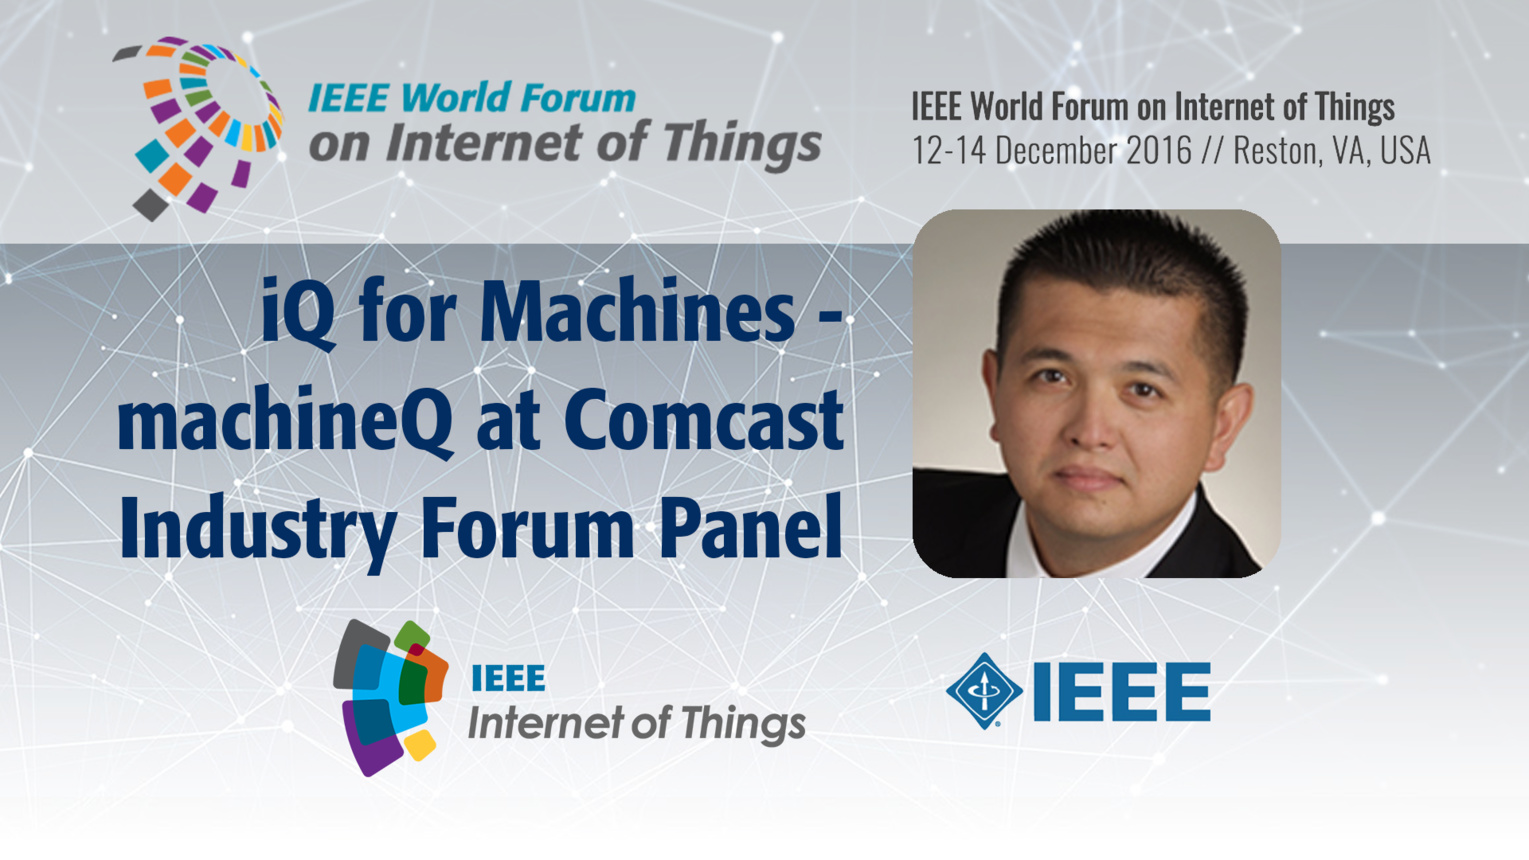 John Brzozowski: iQ for Machines - LPWAN Industry Forum Panel: WF-IoT 2016